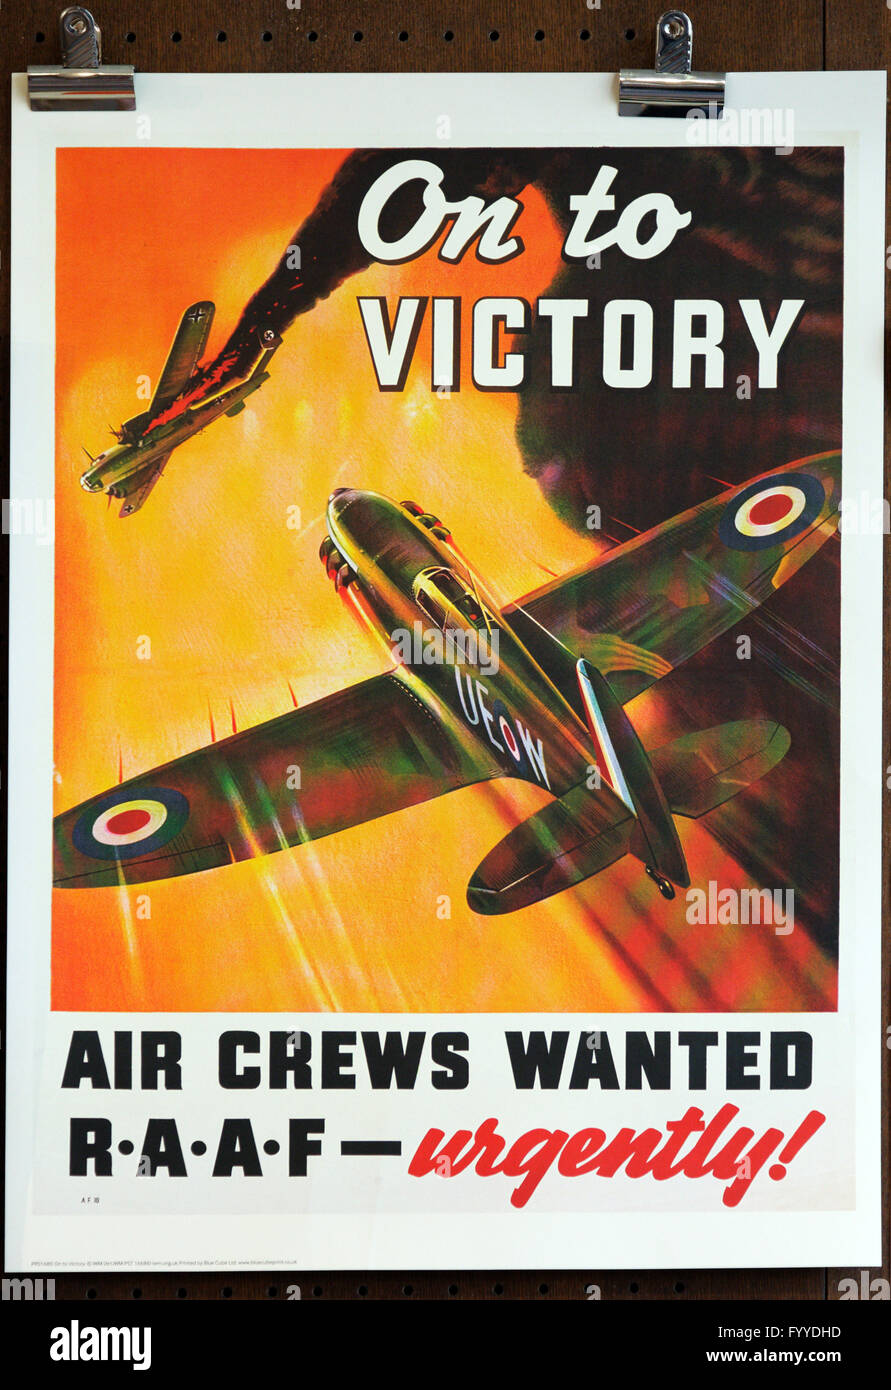 Ww2 Poster Stock Photos & Ww2 Poster Stock Images - Alamy